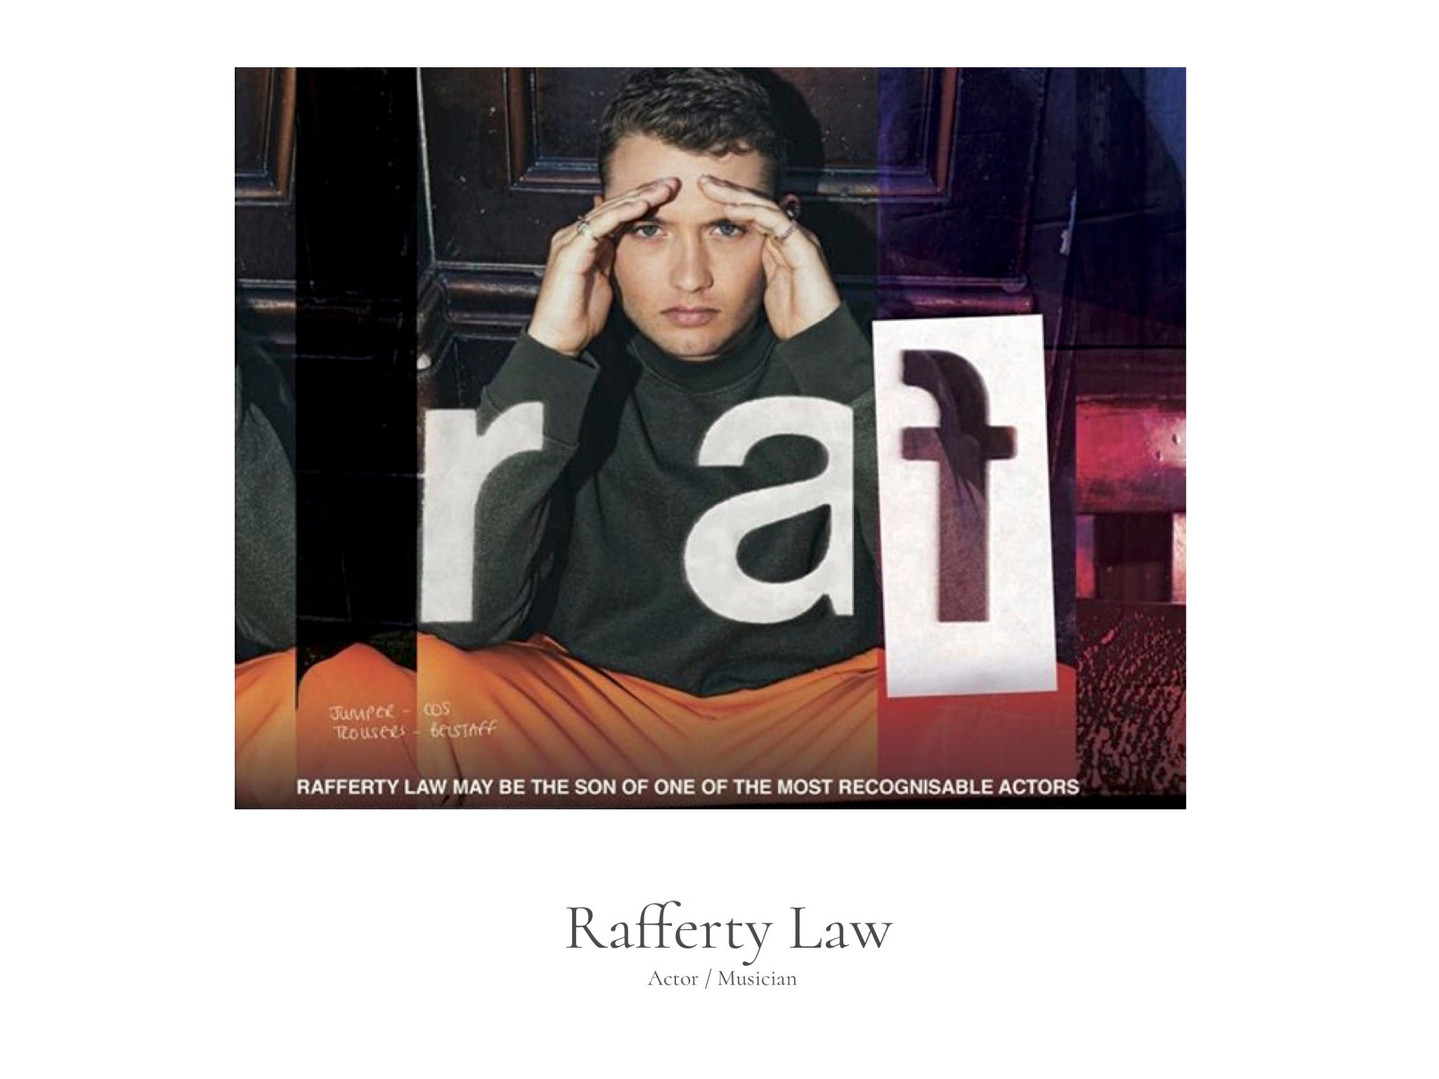 RAFFERTY LAW